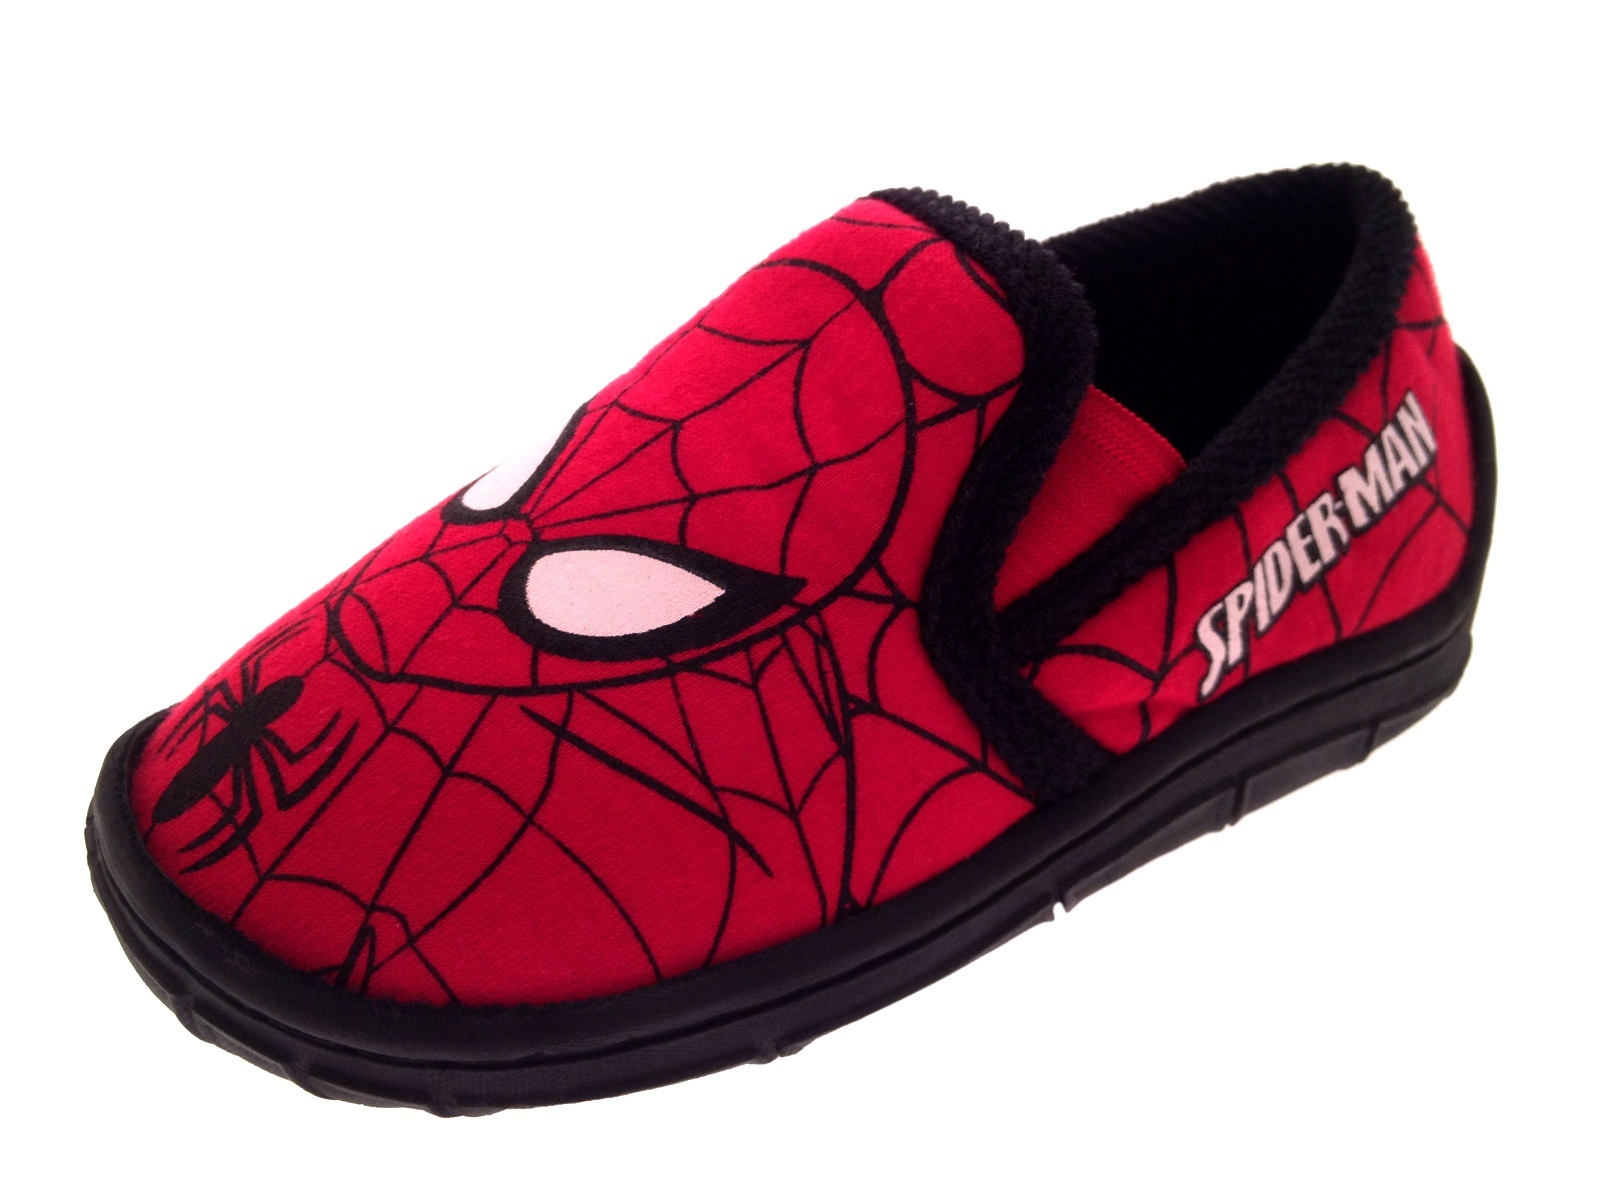 060709a064c1 Marvel Spiderman Slippers Boys Character Booties Adjustable Straps ...